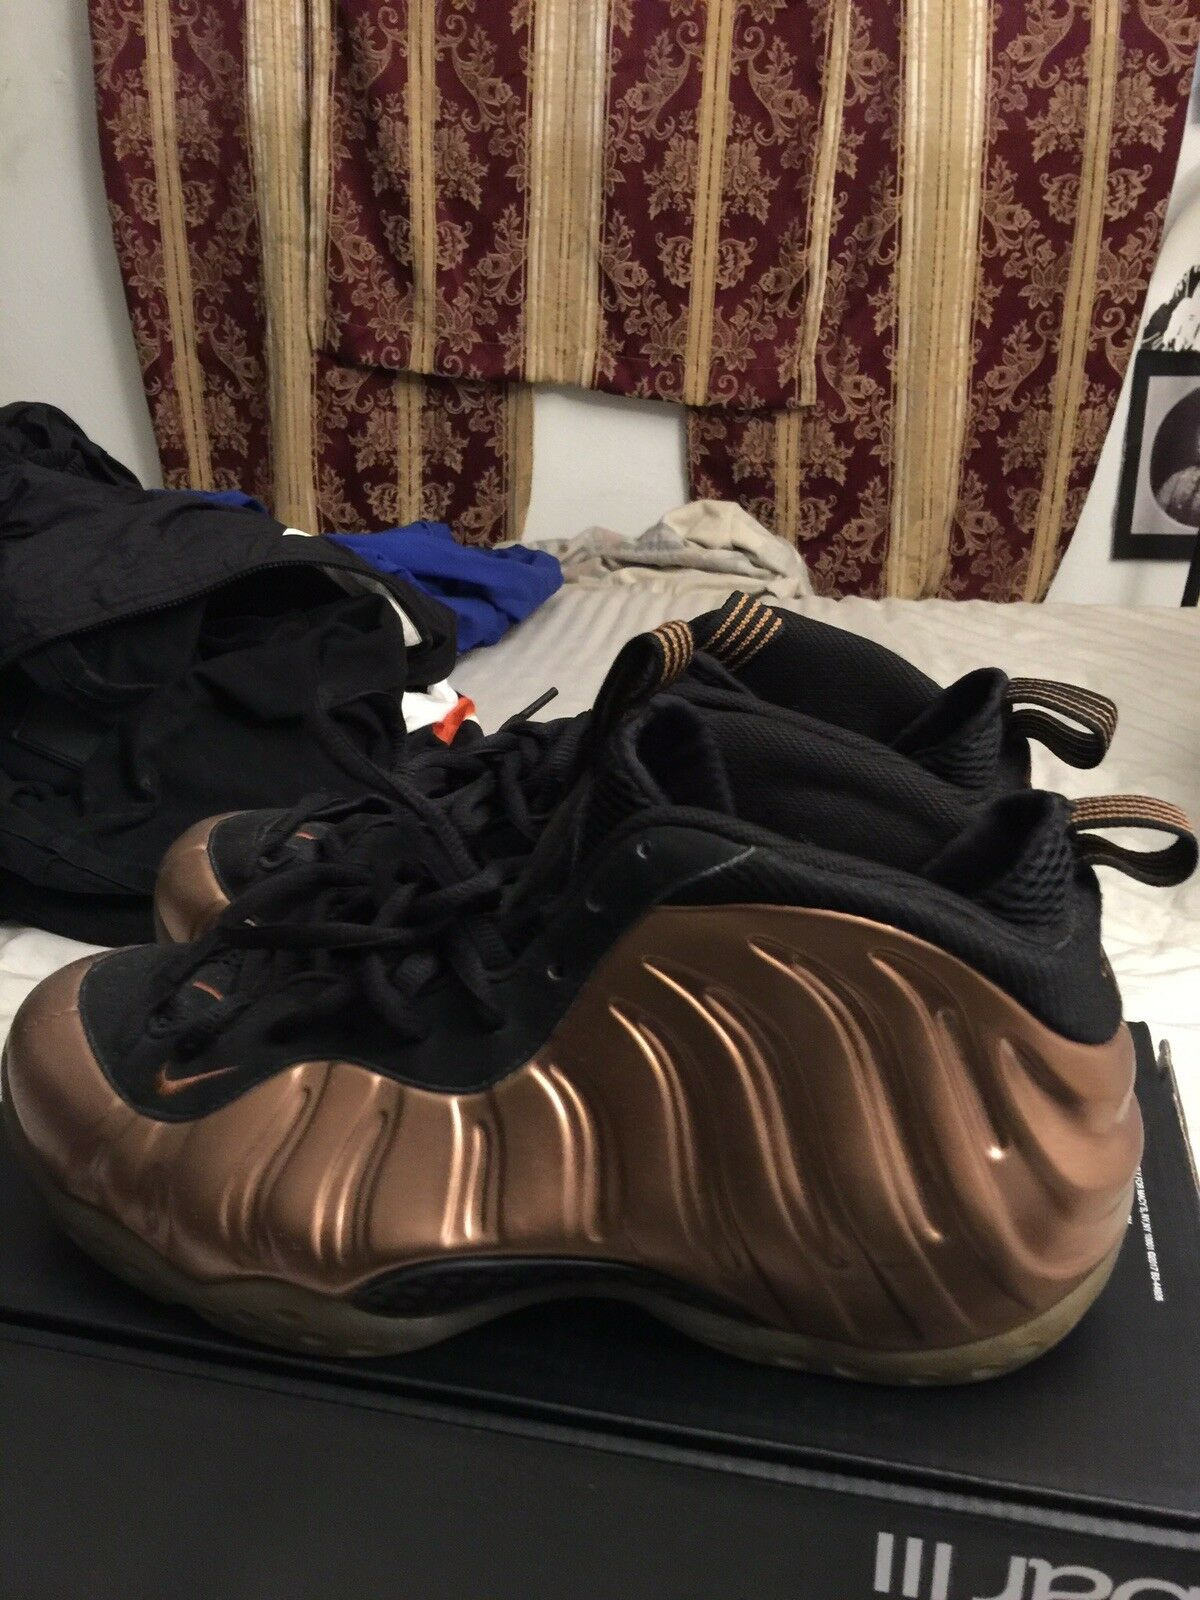 Men's/Women's NIKE FOAMPOSITE COPPER SZ 10 We have Carefully won praise from our customers. Carefully have selected materials buy online 6b8501